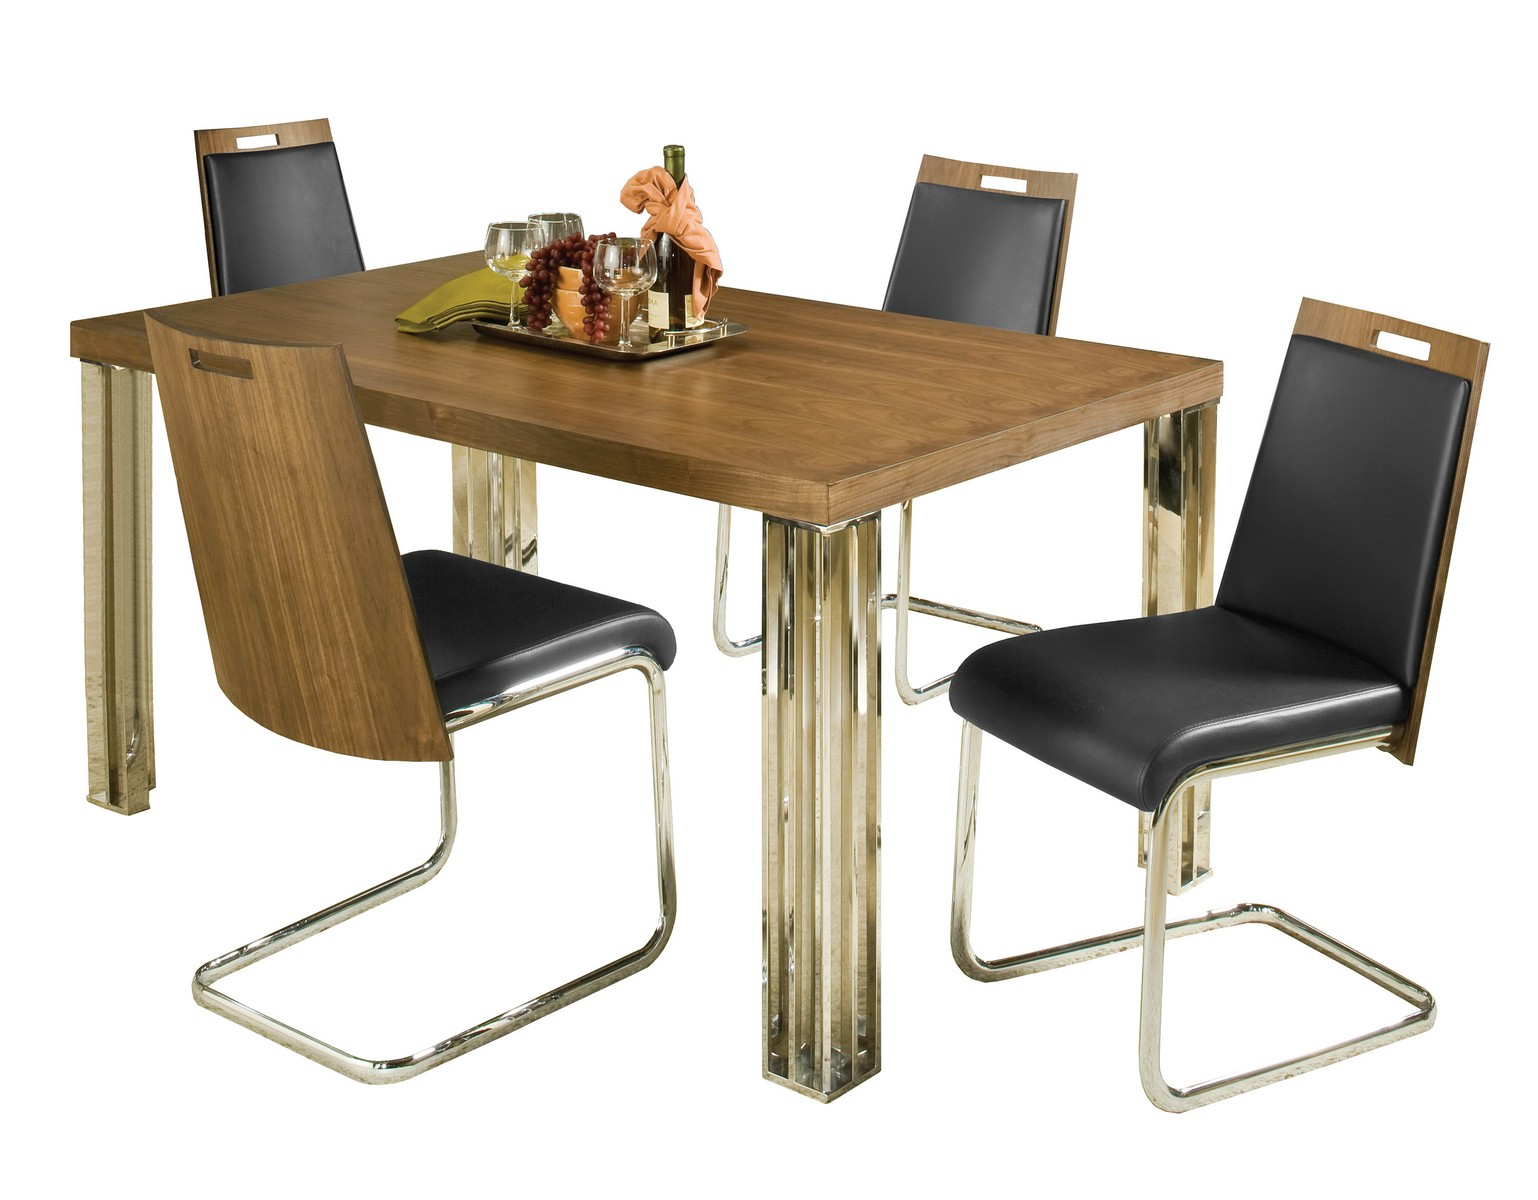 Hillsdale Trivoli 5 Pc Dining Set - Walnut/ Stainless Steel